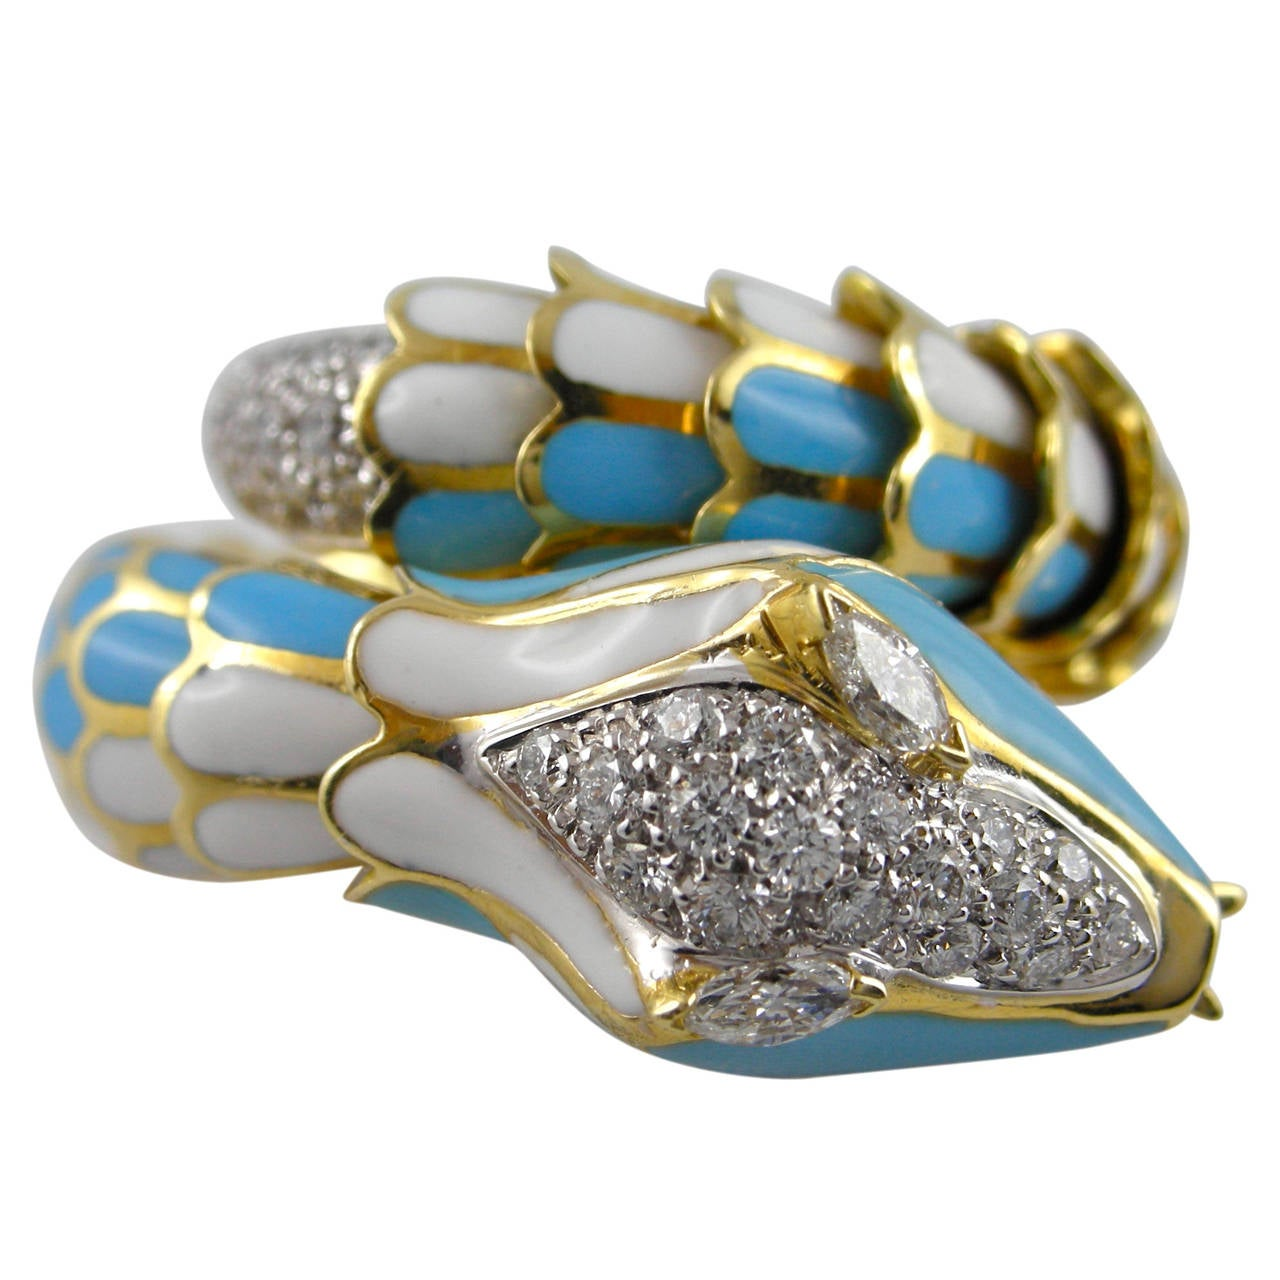 for design enagagement jewelry party russian item trendy style rings enamel art ring women gift